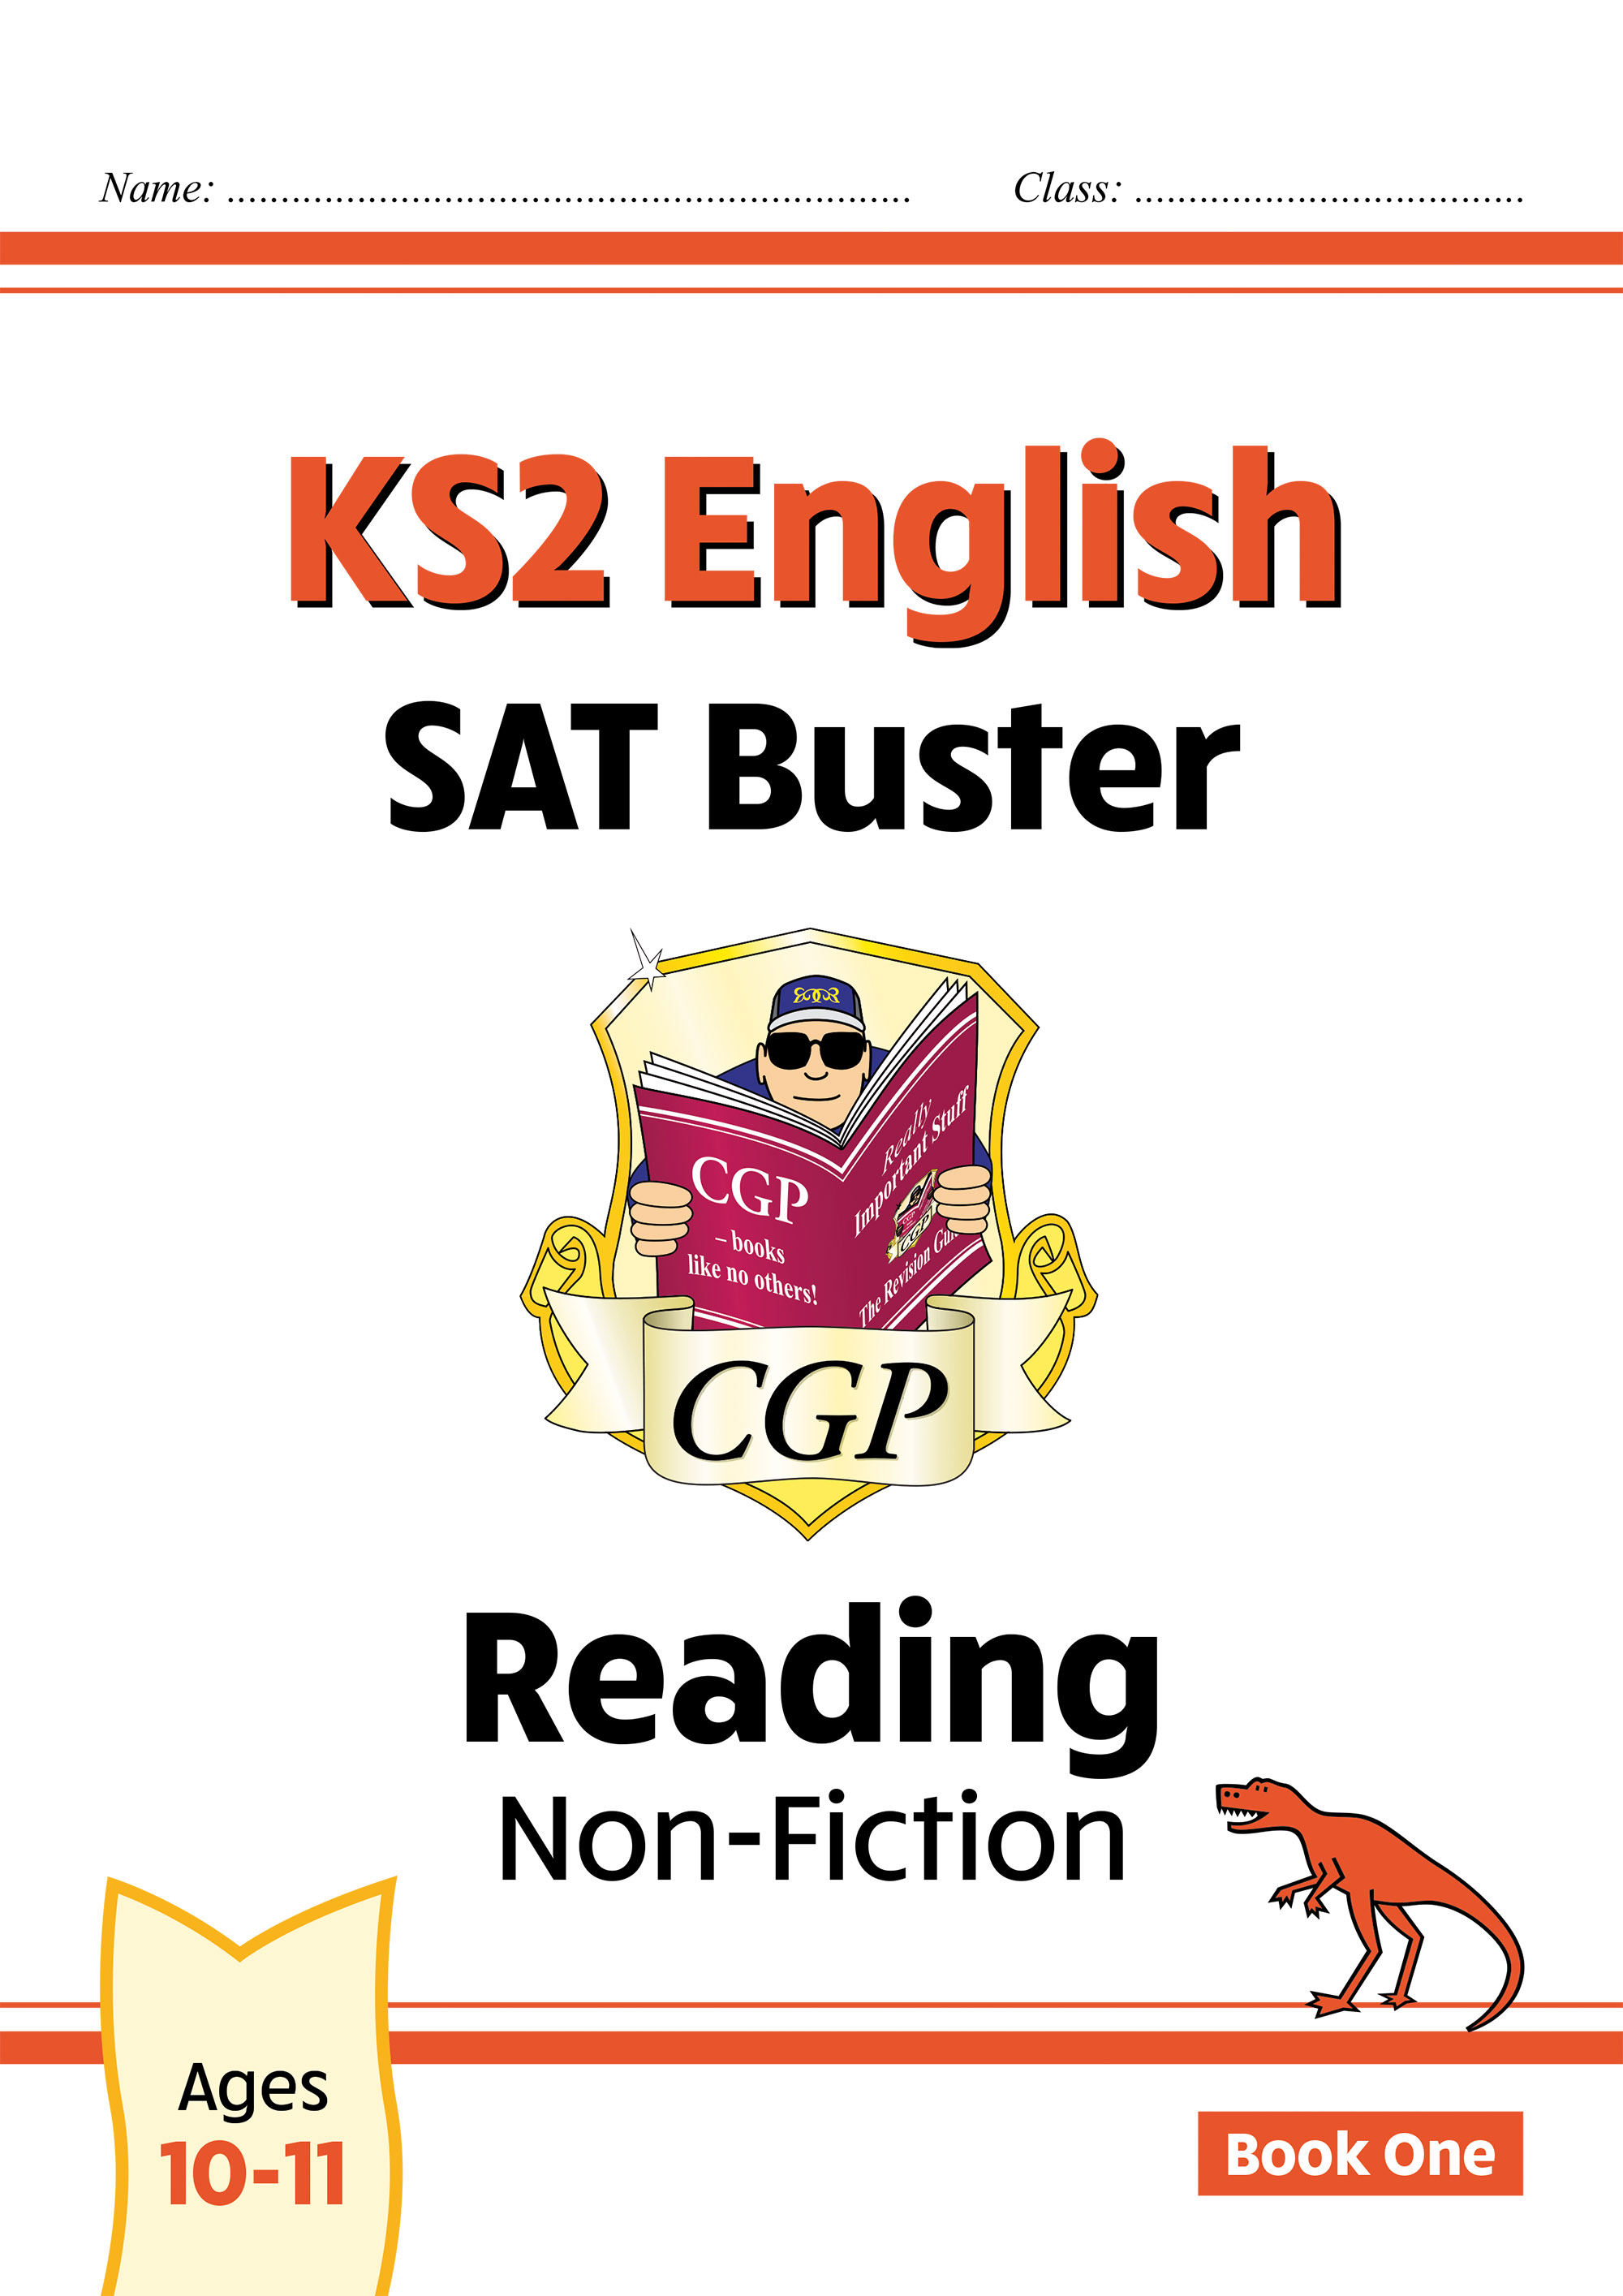 E6FRN22DK - New KS2 English Reading SAT Buster: Non-Fiction - Book 1 (for tests in 2021)